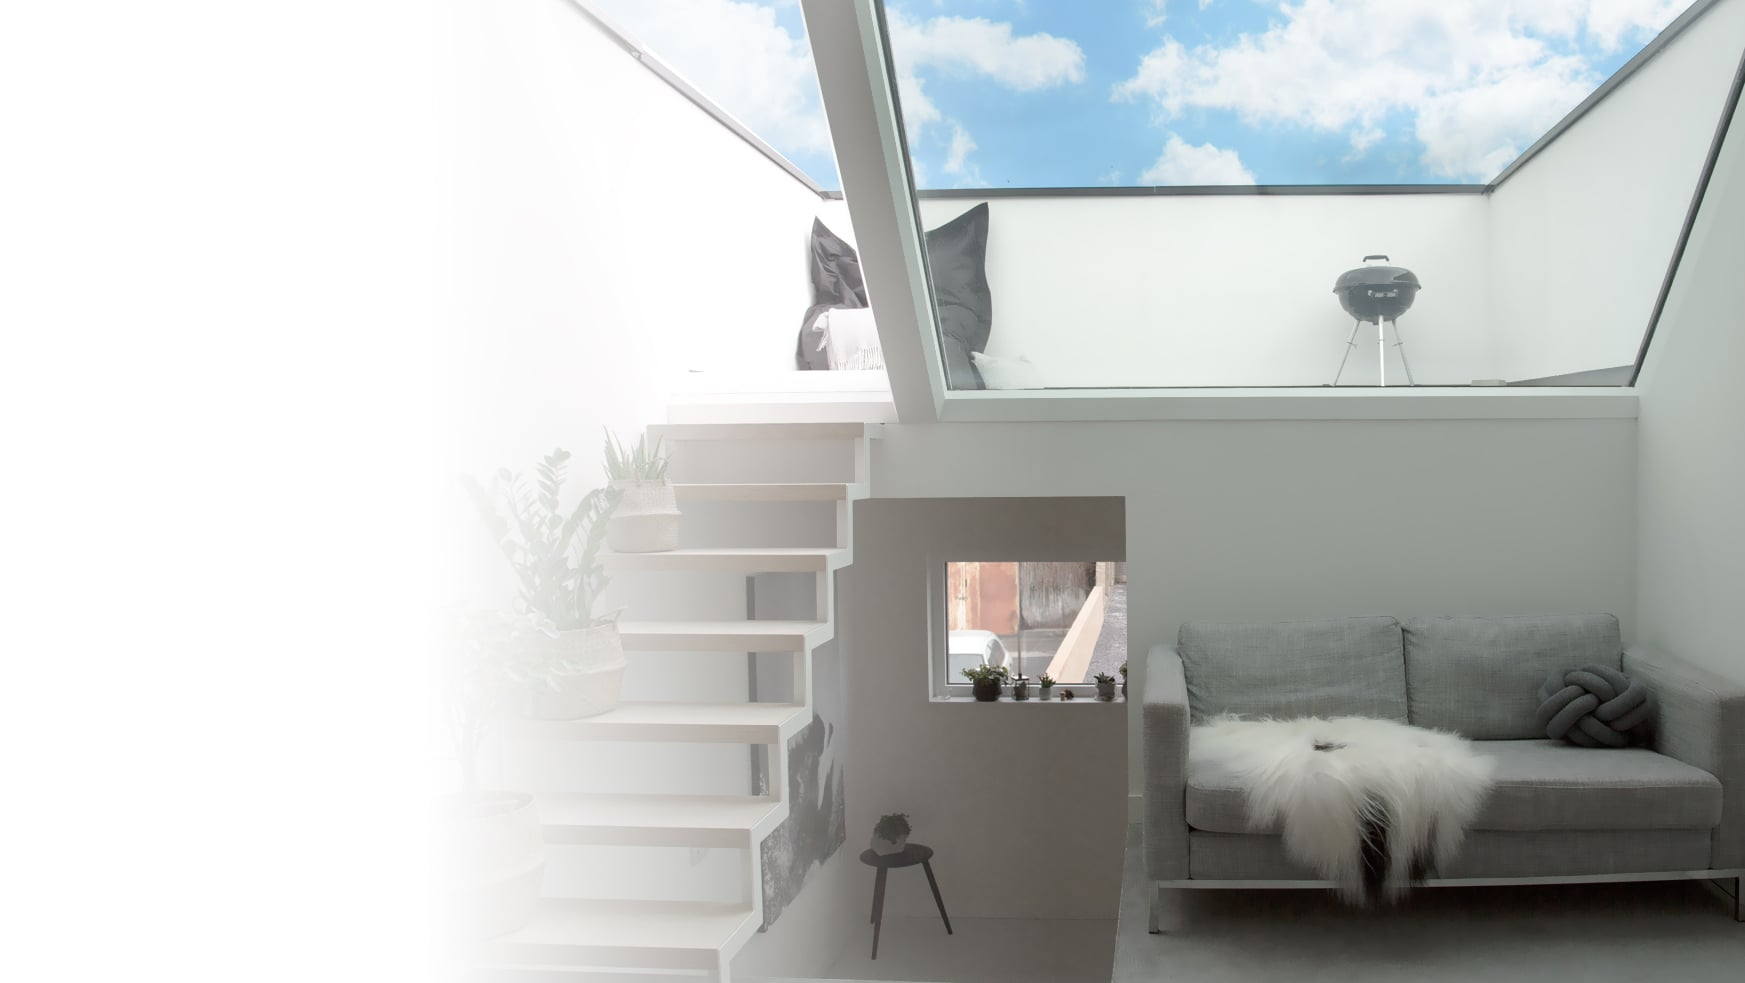 Rooflight in Passive House, London